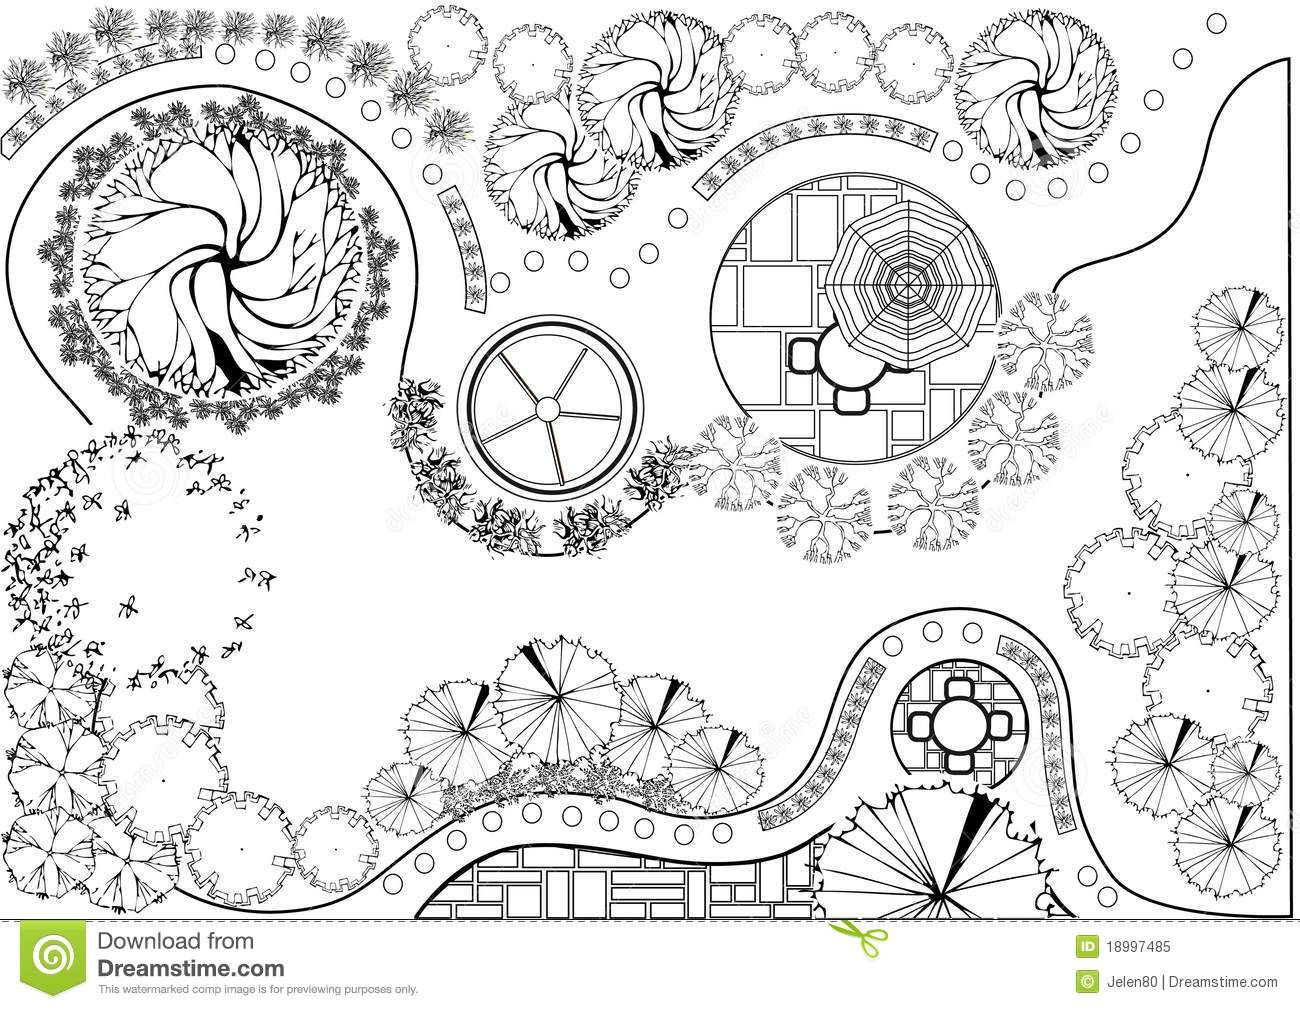 Garden plan black and white stock vector image 18997485 - How to design outdoor lighting plan ...